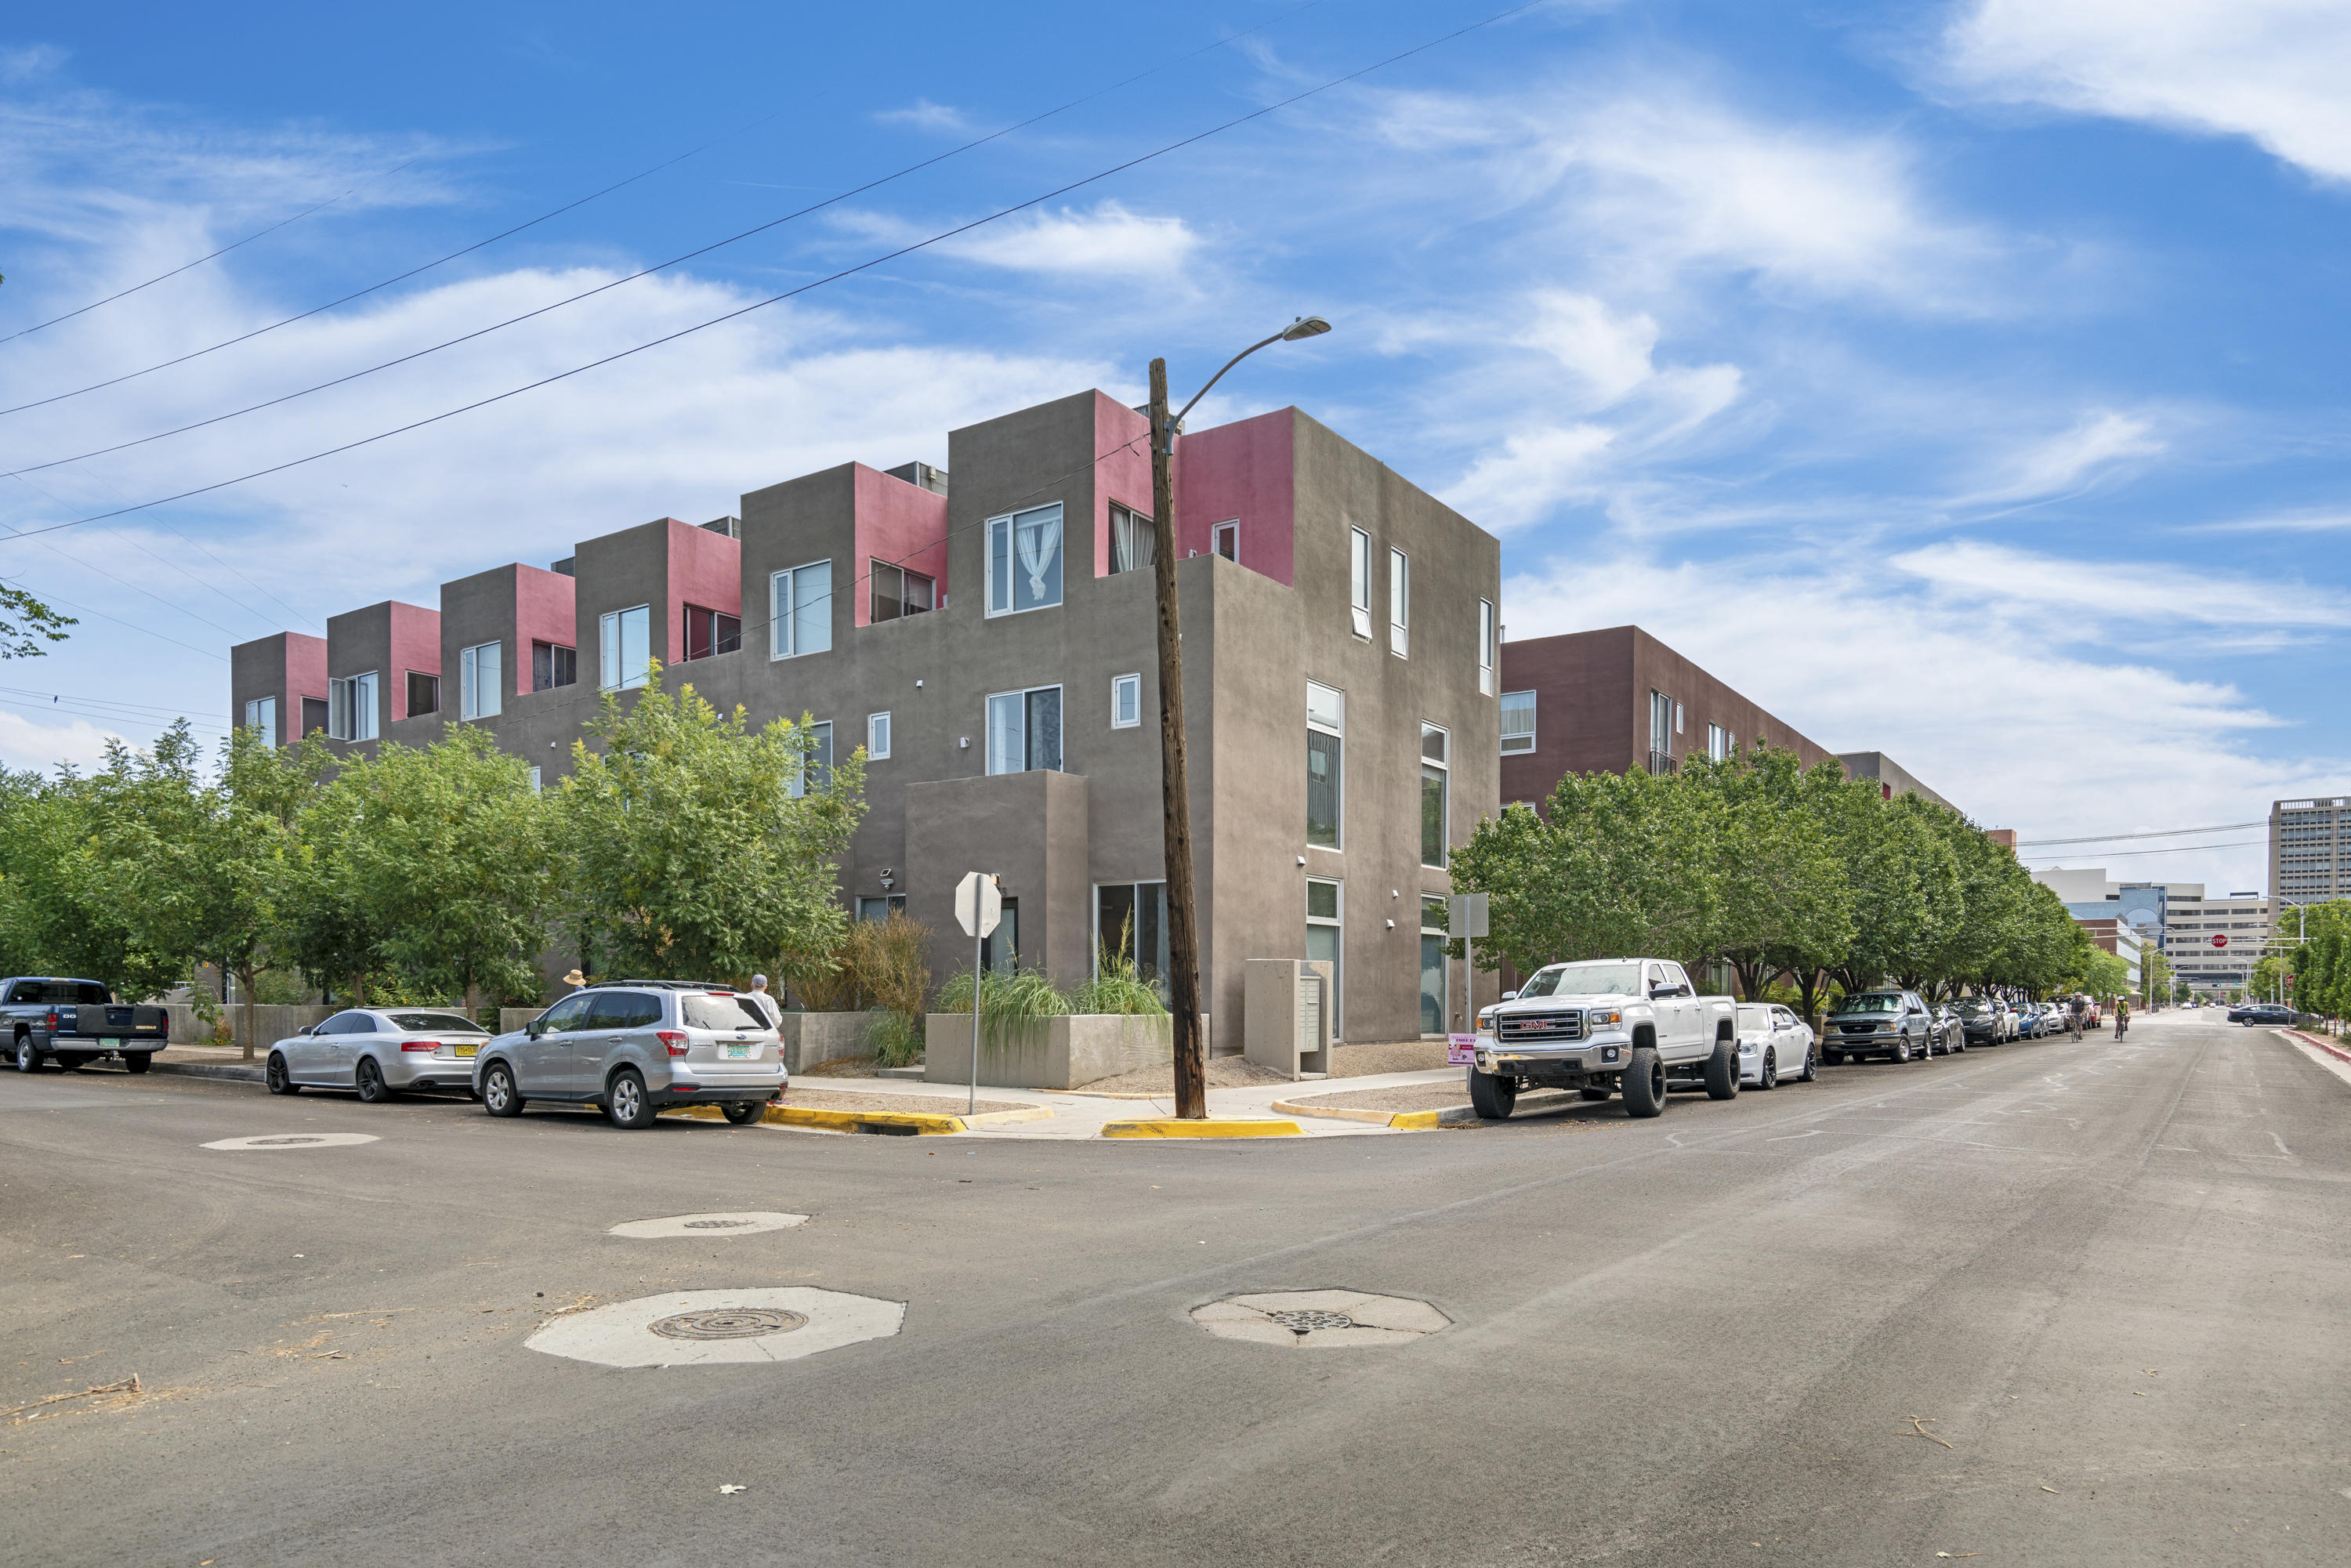 Don't waste your money on a rental or dorm. This loft could be  perfect  for a UNM or CNM student (gated and secure). This great location is close to both, as well as downtown entertainment, shopping,  hospitals, the zoo and Bio Park.Very peaceful community courtyard. Refrigerator, washer and drier convey.